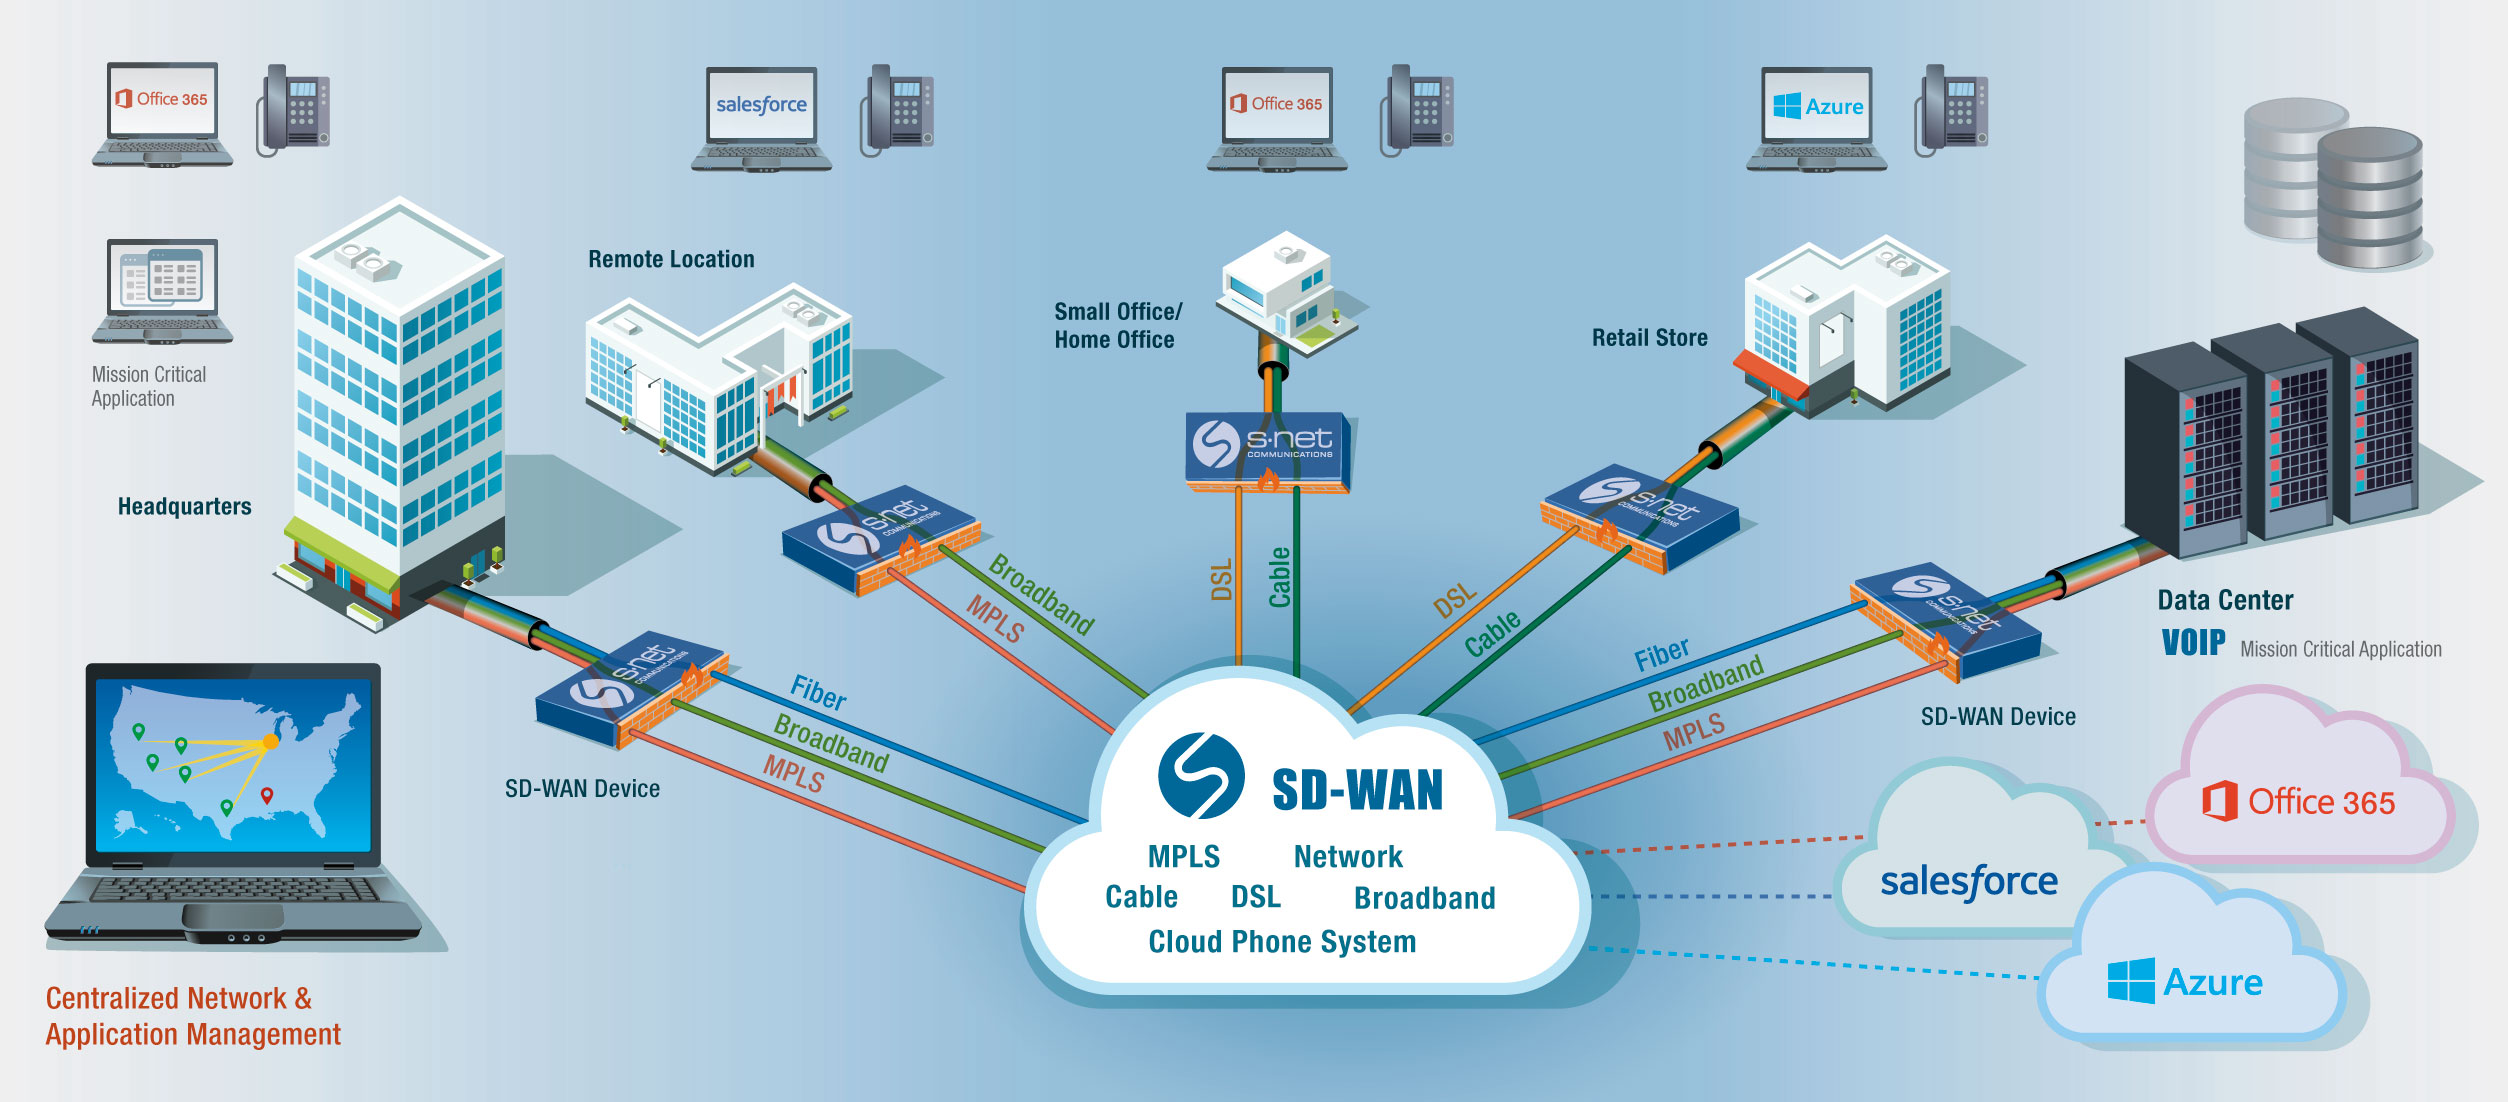 sd wan software defined wide area networking s net is complete